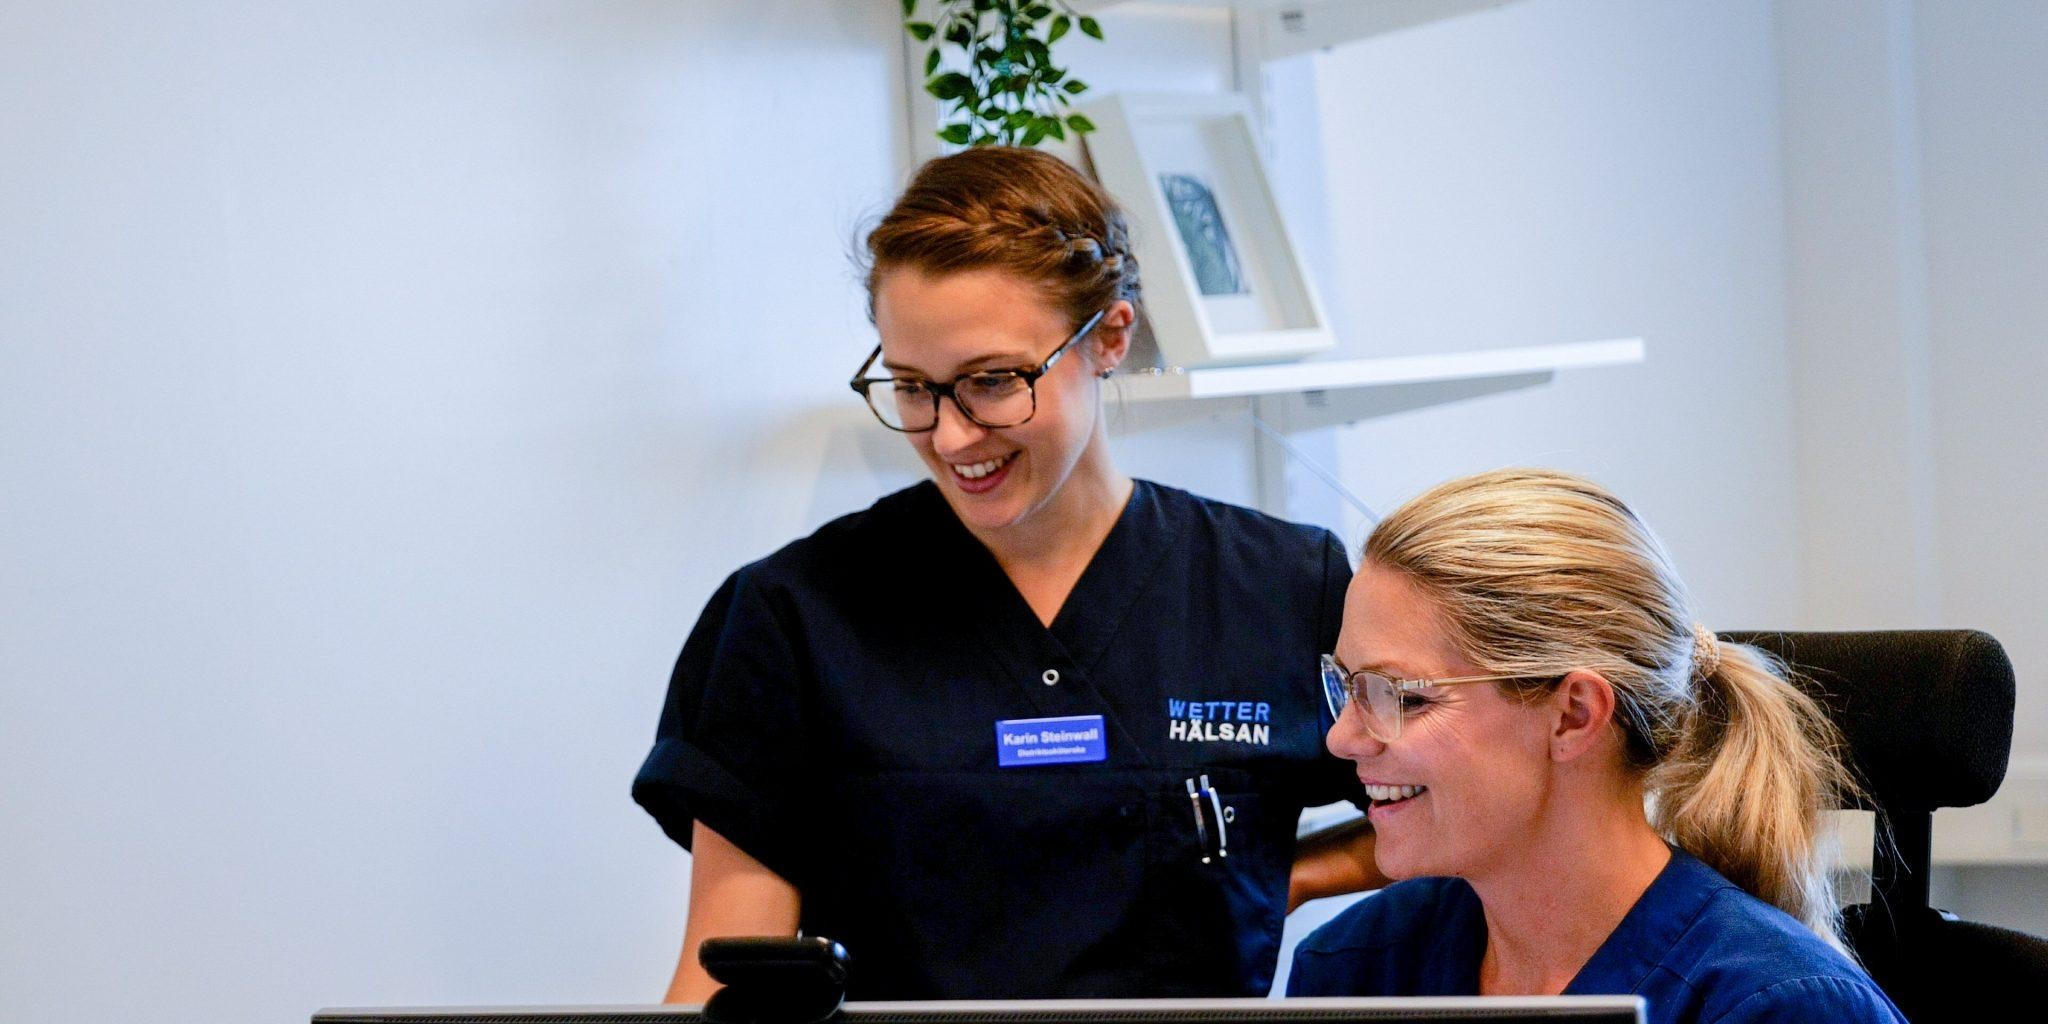 Wetterhälsan is Jönköping's most extensive private care provider with 20